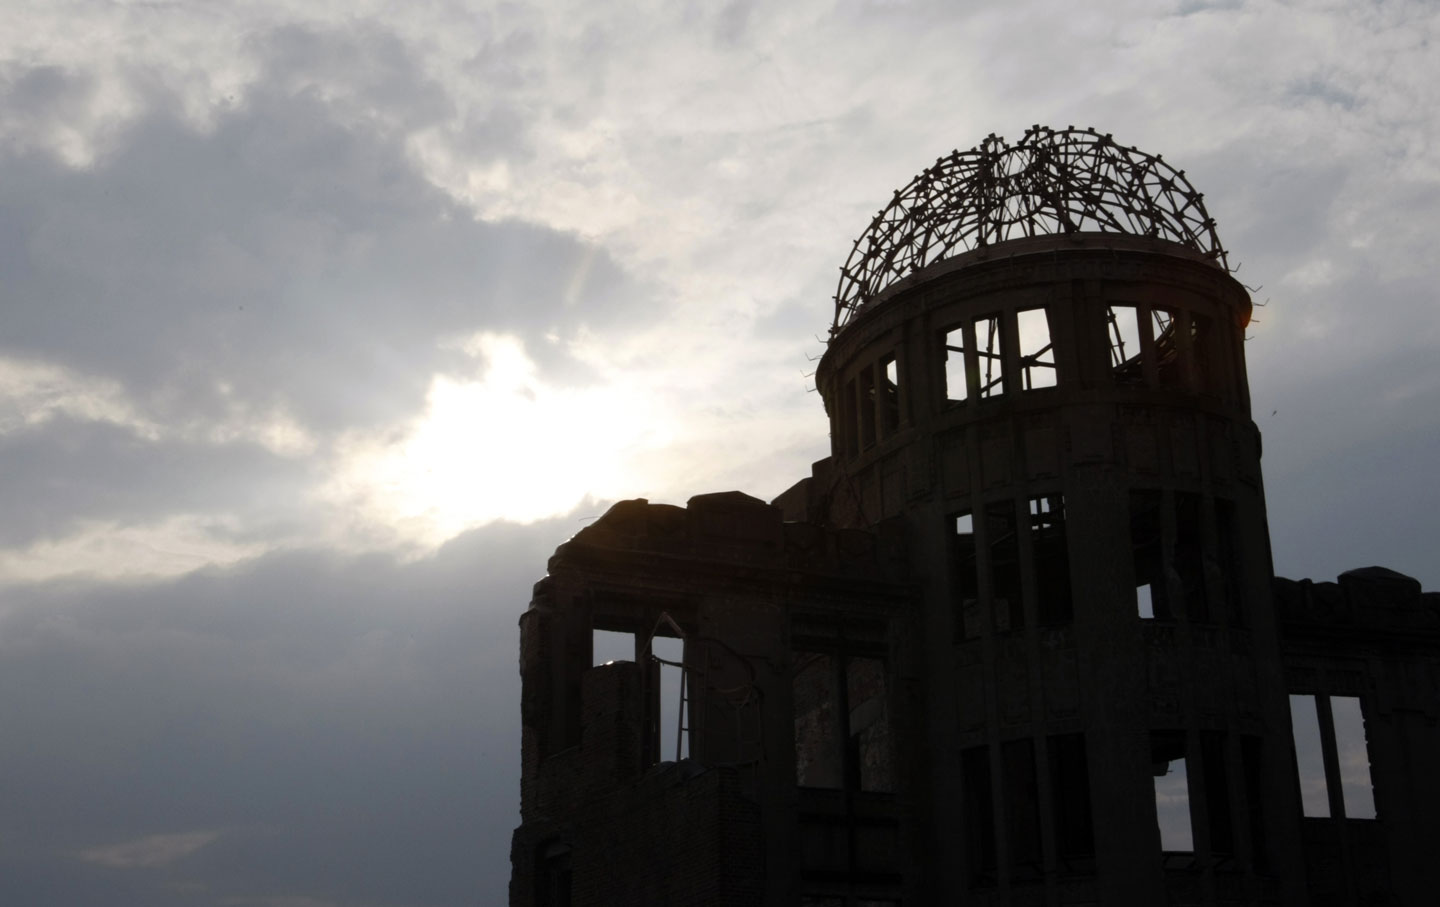 the annihilation of the japanese in hiroshima The name hiroshima has come to stand for the catastrophic tragedy of war in general and for the horrifying potential for nuclear annihilation that has loomed in human affairs since the day in august 1945 when an atomic weapon was first used over that southwestern japanese.